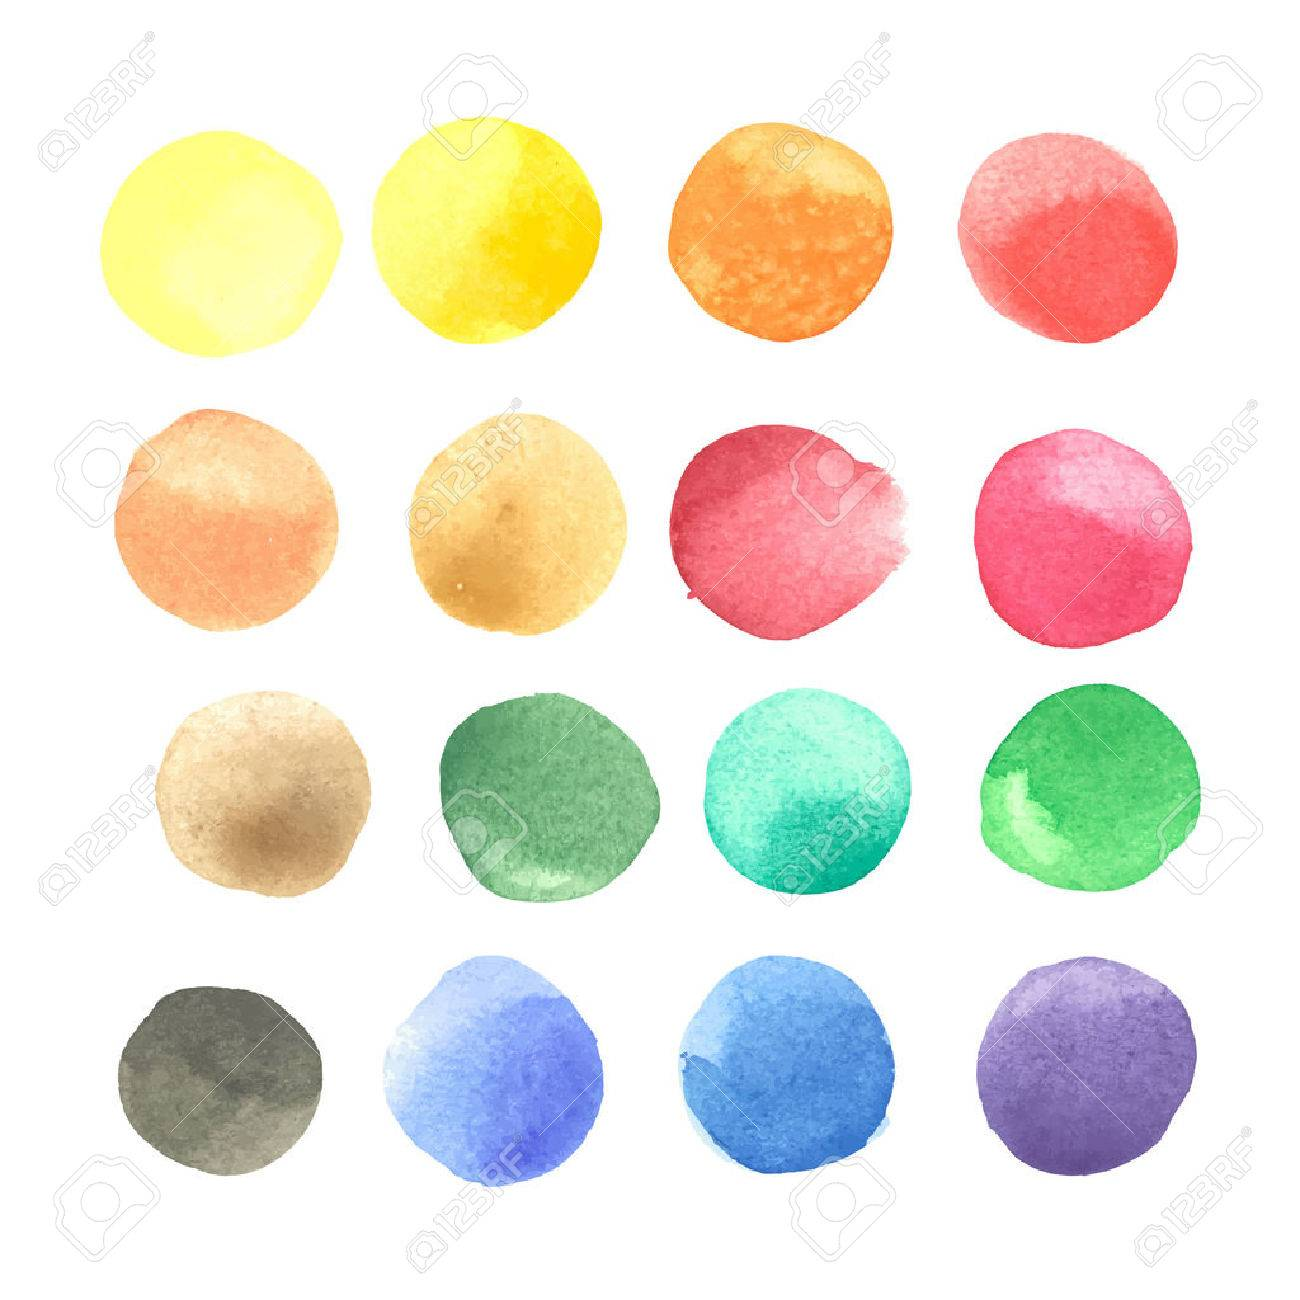 colorful watercolor blots isolated on white background - 51948984